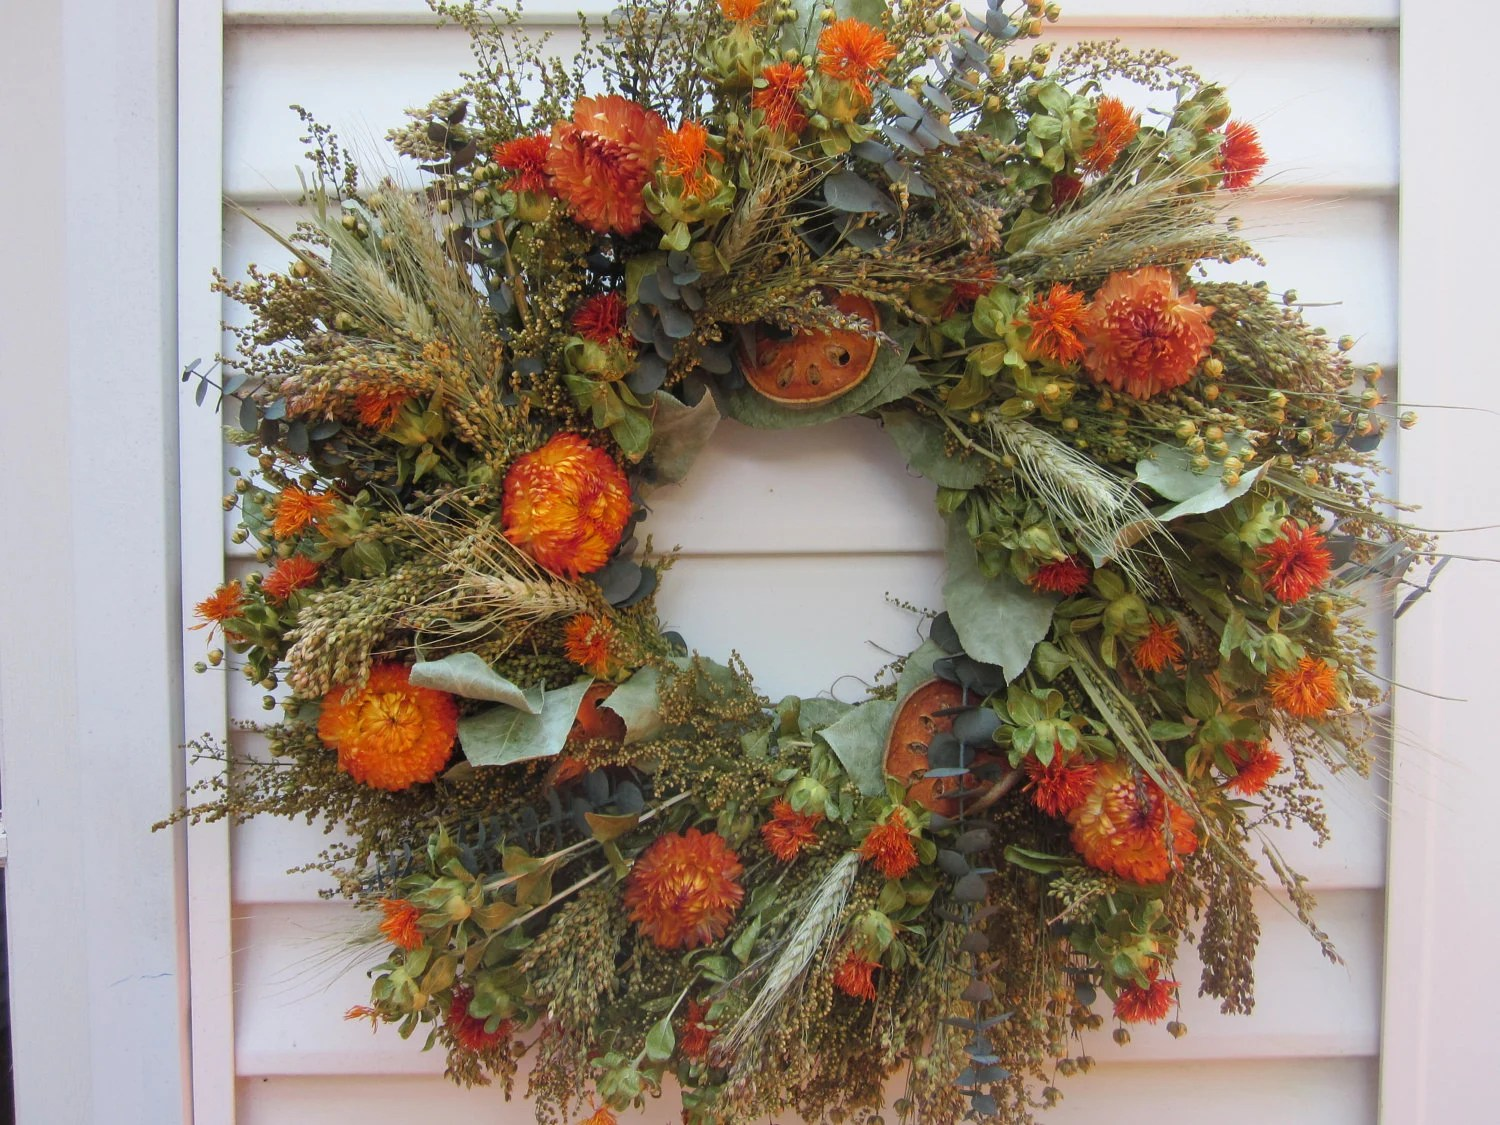 Large Fall Dried Flower Wreath Mixed Flowers In Autumn Colors